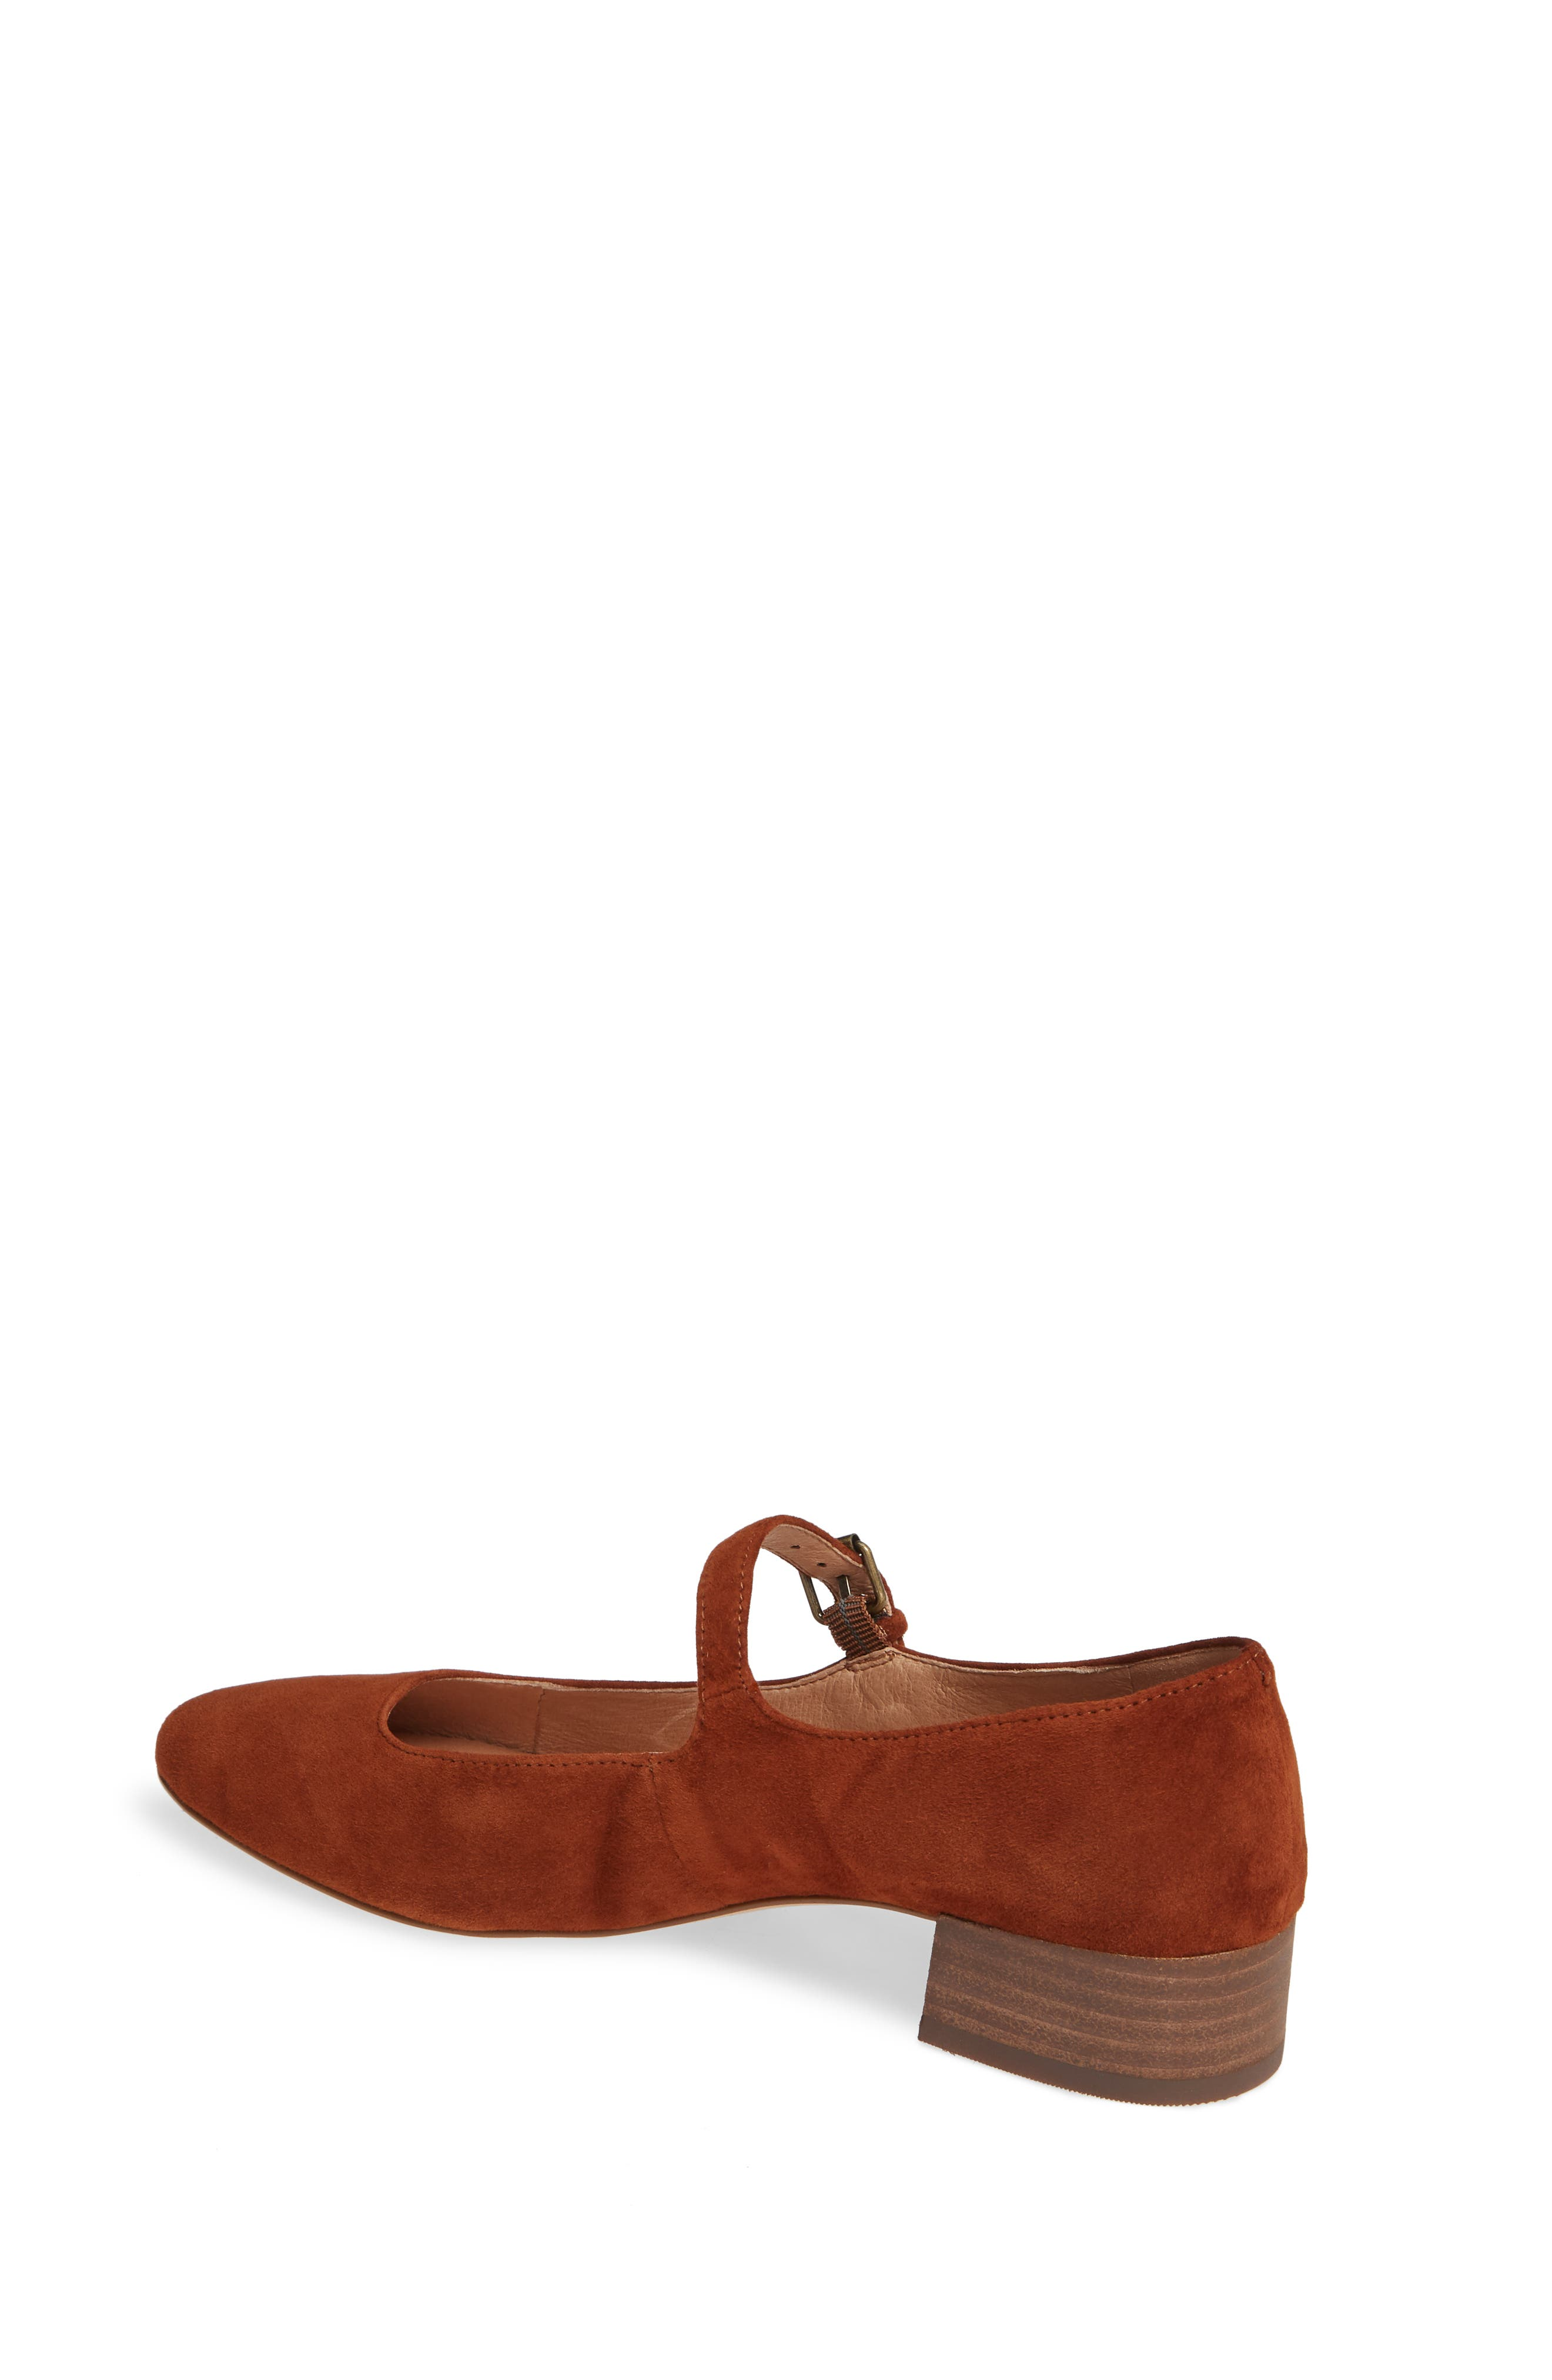 The Delilah Mary Jane Pump,                             Alternate thumbnail 2, color,                             MAPLE SYRUP SUEDE